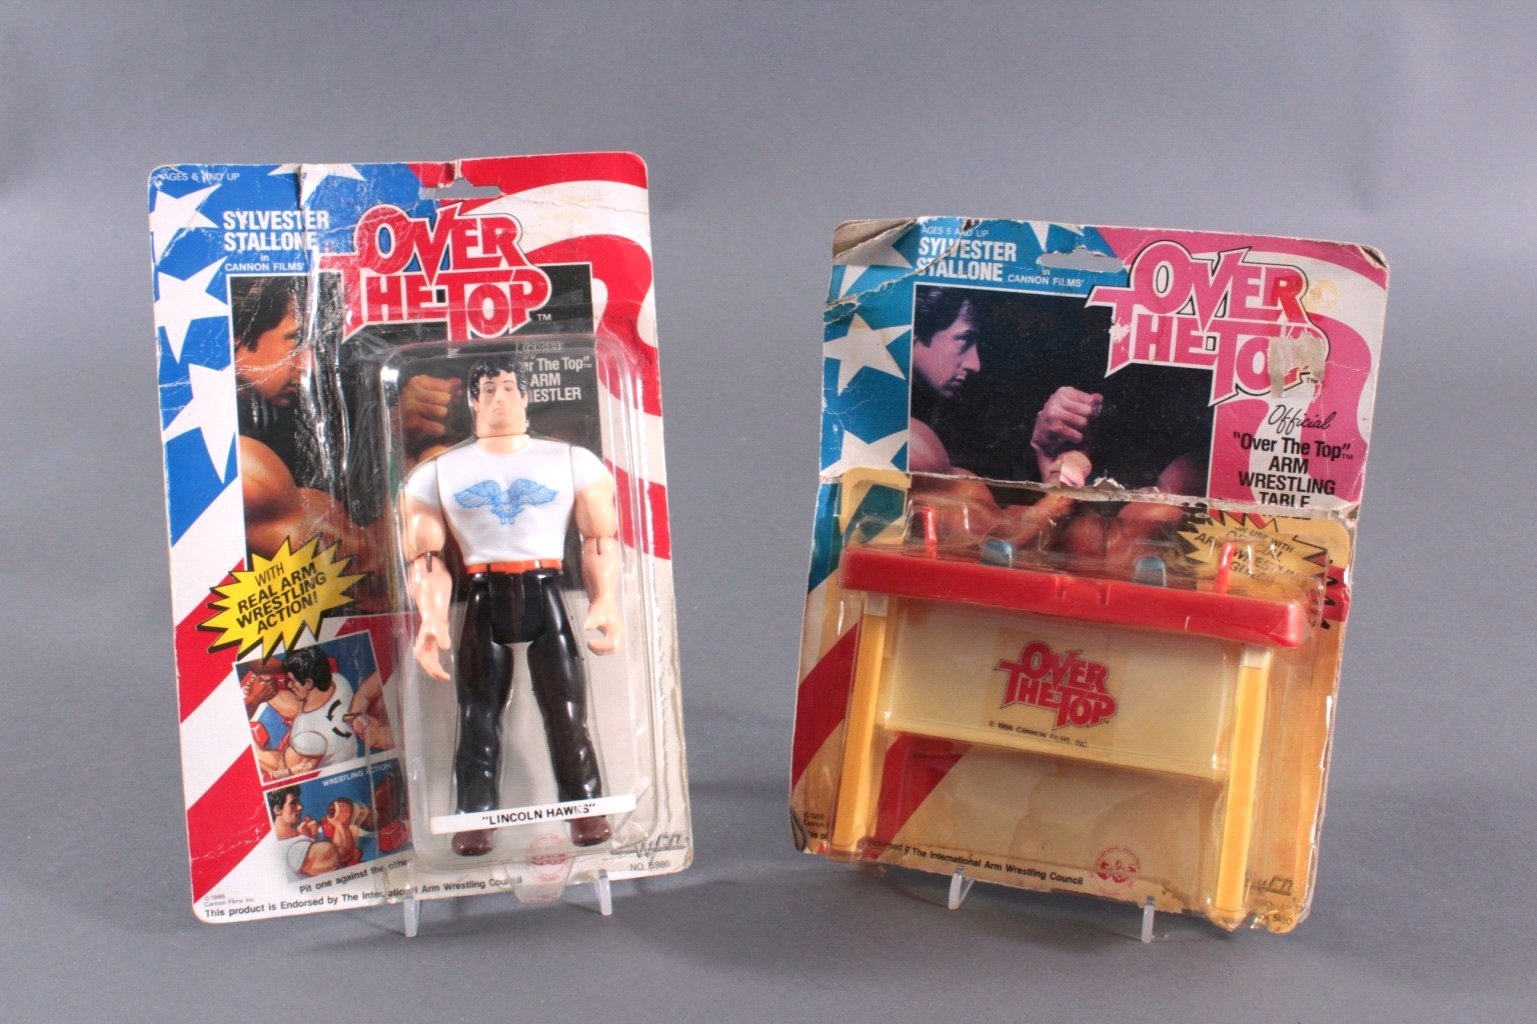 Over The Top Action Figur und Arm Wrestling Table